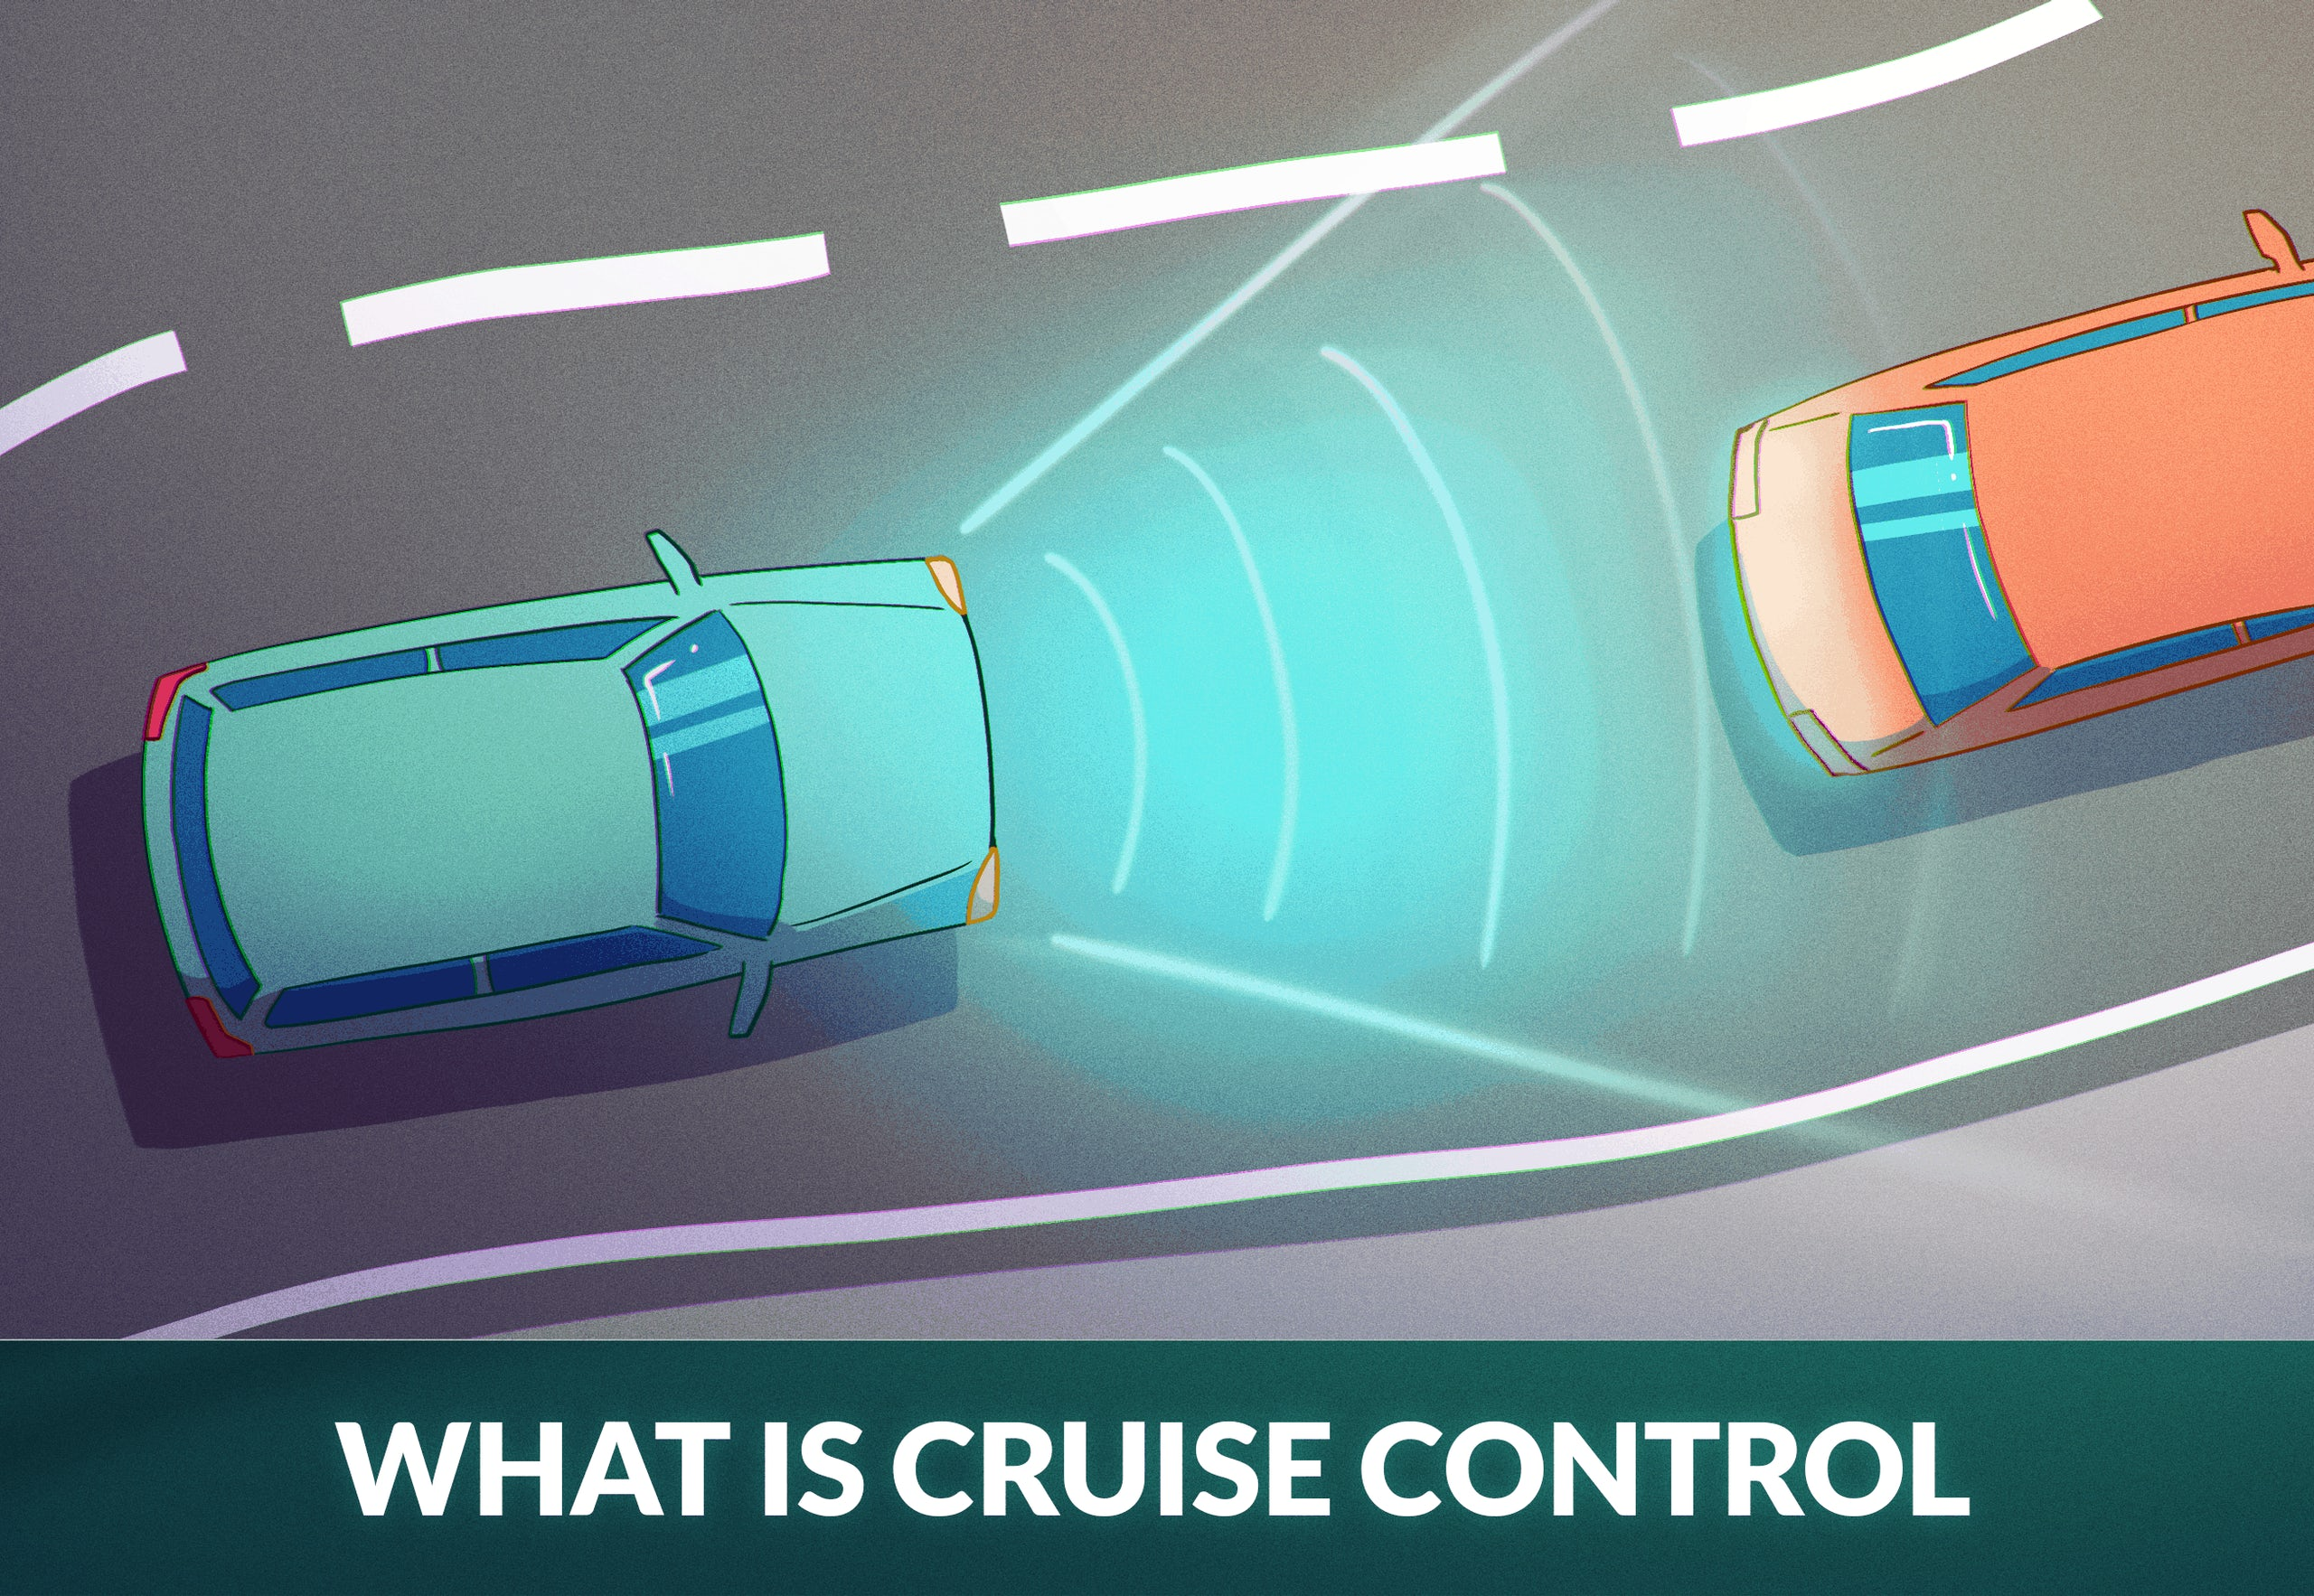 What is Cruise Control